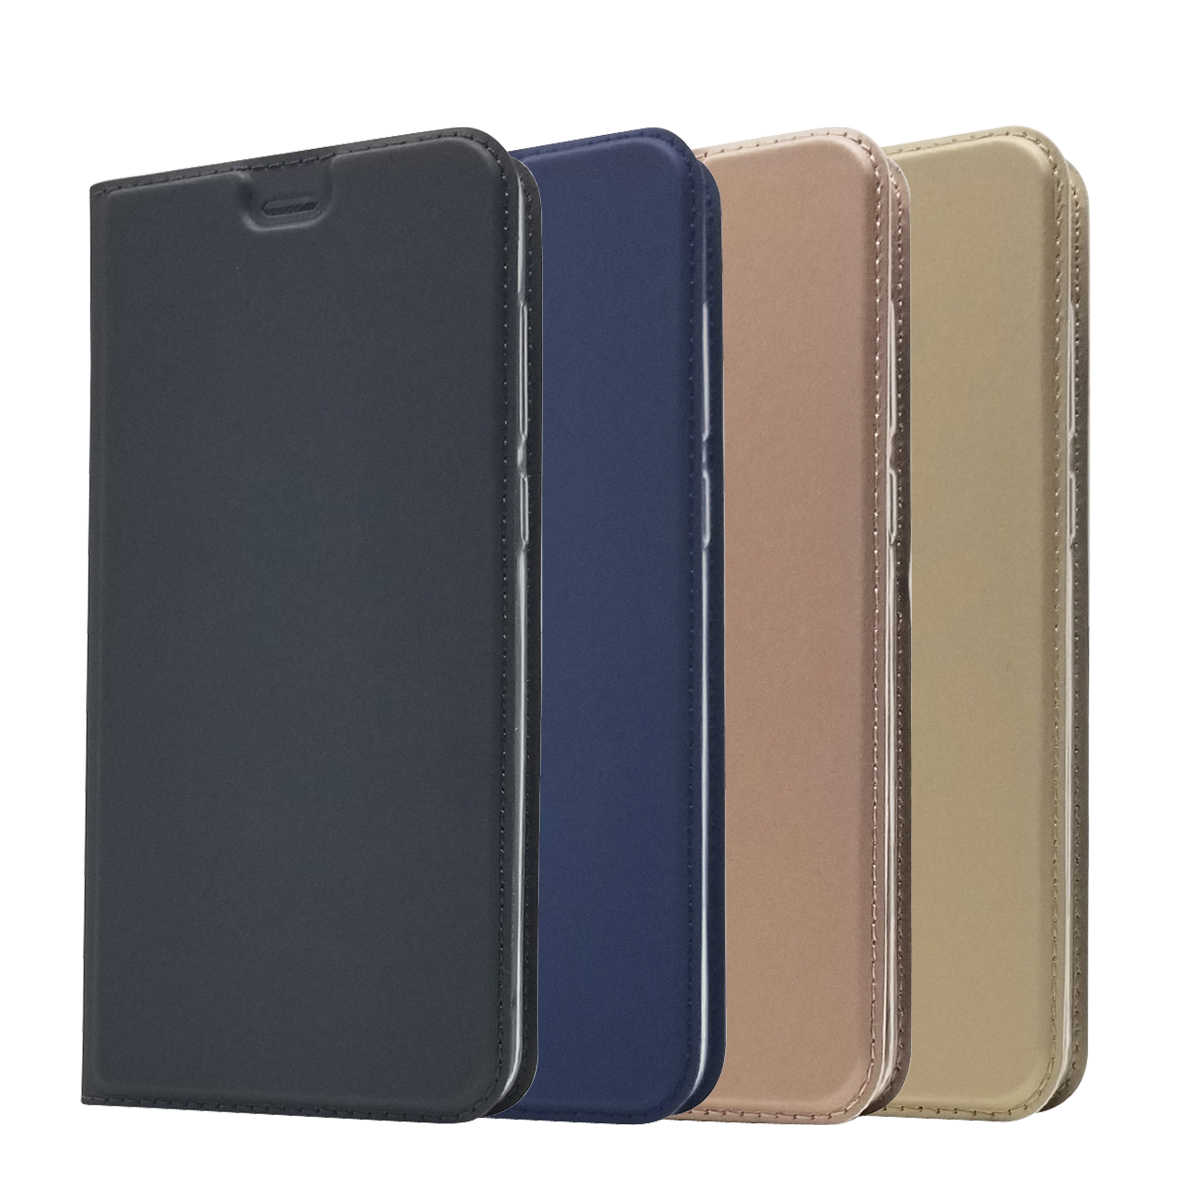 Luxury Business Leather Case For Nokia 5.1 Plus 2.1 5.5 6.1 Cover Leather Nokia 1 2 3 5 6 2018 7 8 9 Cover Wallet Phone Cases